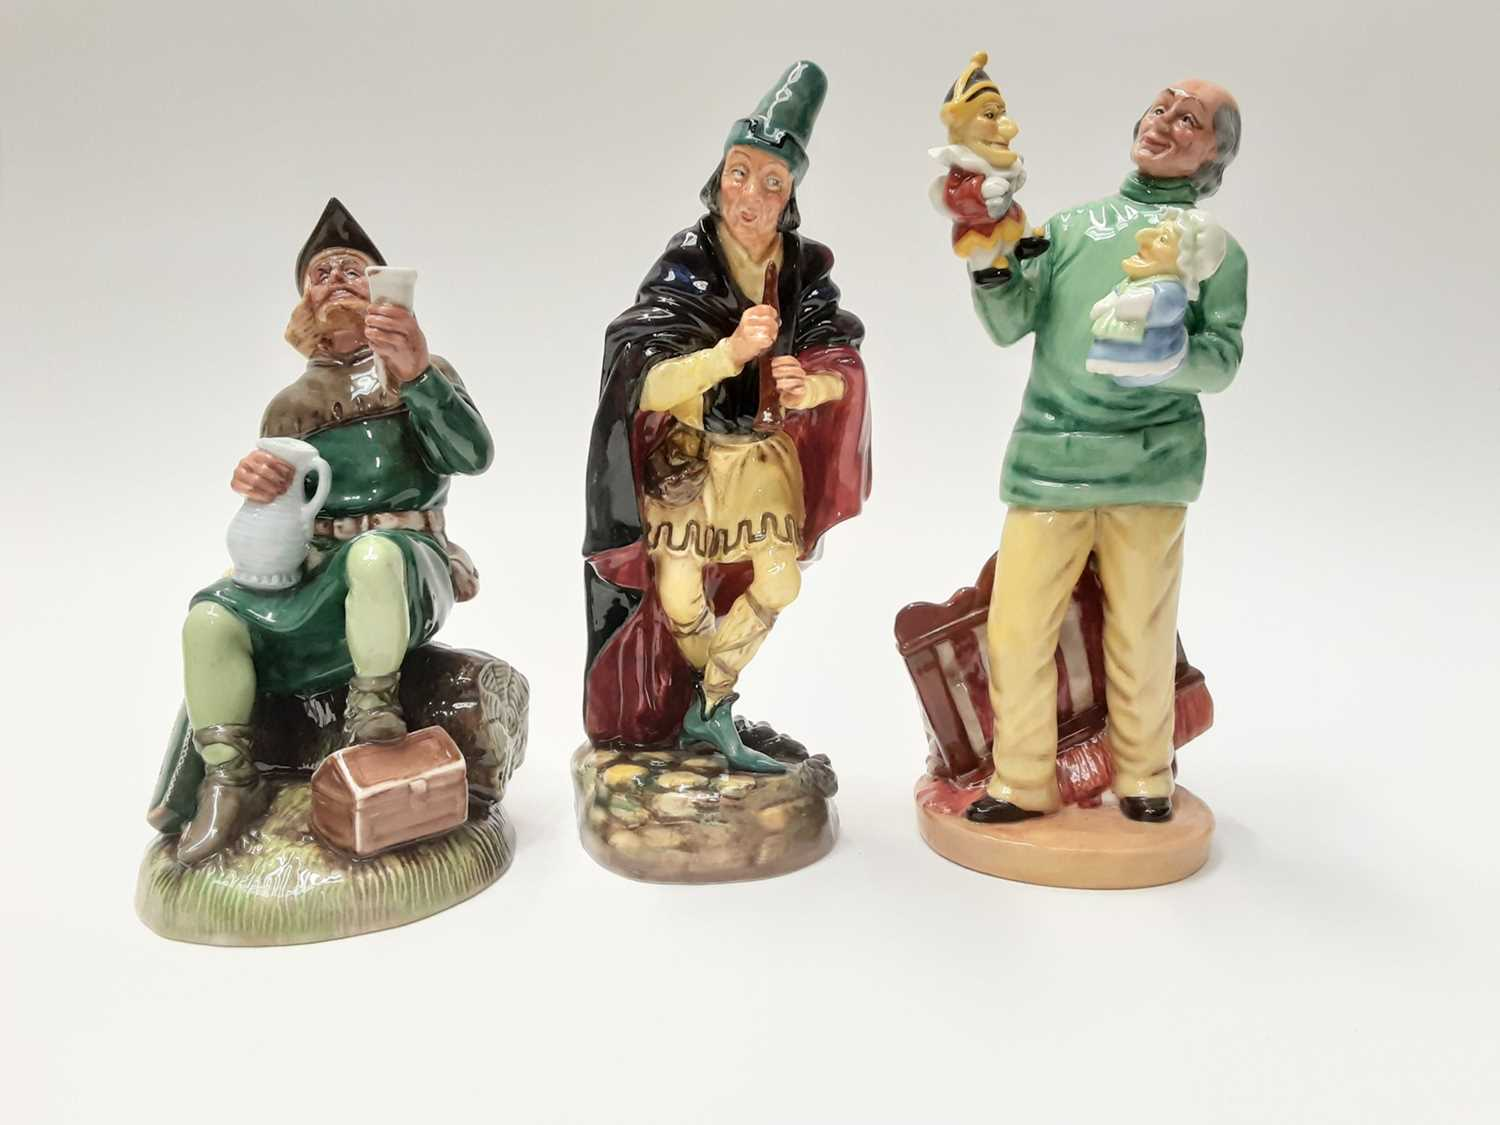 Lot 47 - Three Royal Doulton figures - The Pied Piper HN2102, Robin Hood HN2773 and Punch and Judy Man HN2765